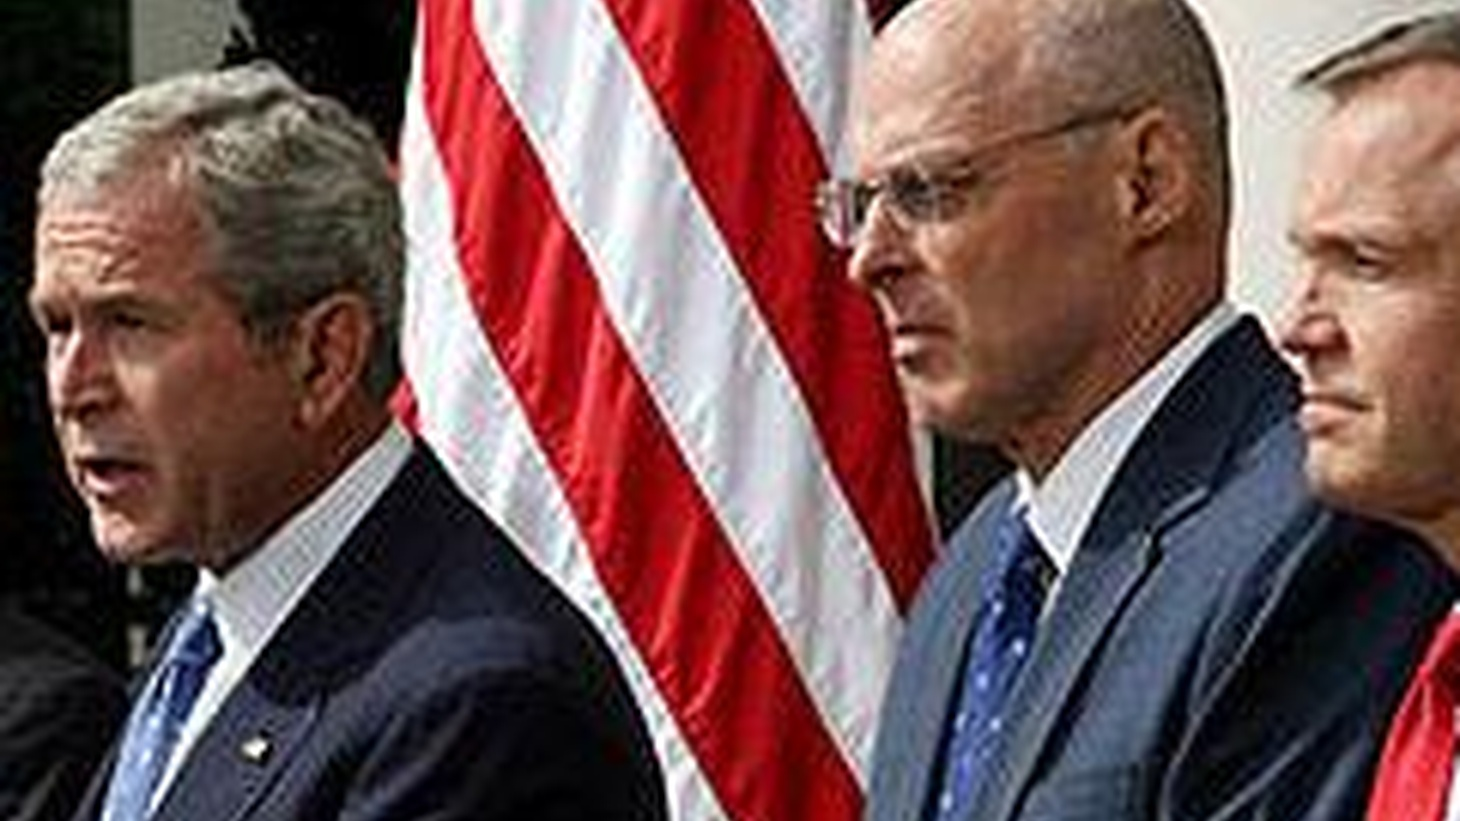 President Bush wants to put up hundreds of billions of taxpayer dollars to save the financial system. He says failing to act would be riskier still. We look the possible consequences of a massive bailout in an election year. Also, New York Times columnist Tom Friedman talks about a grander vision for government spending .